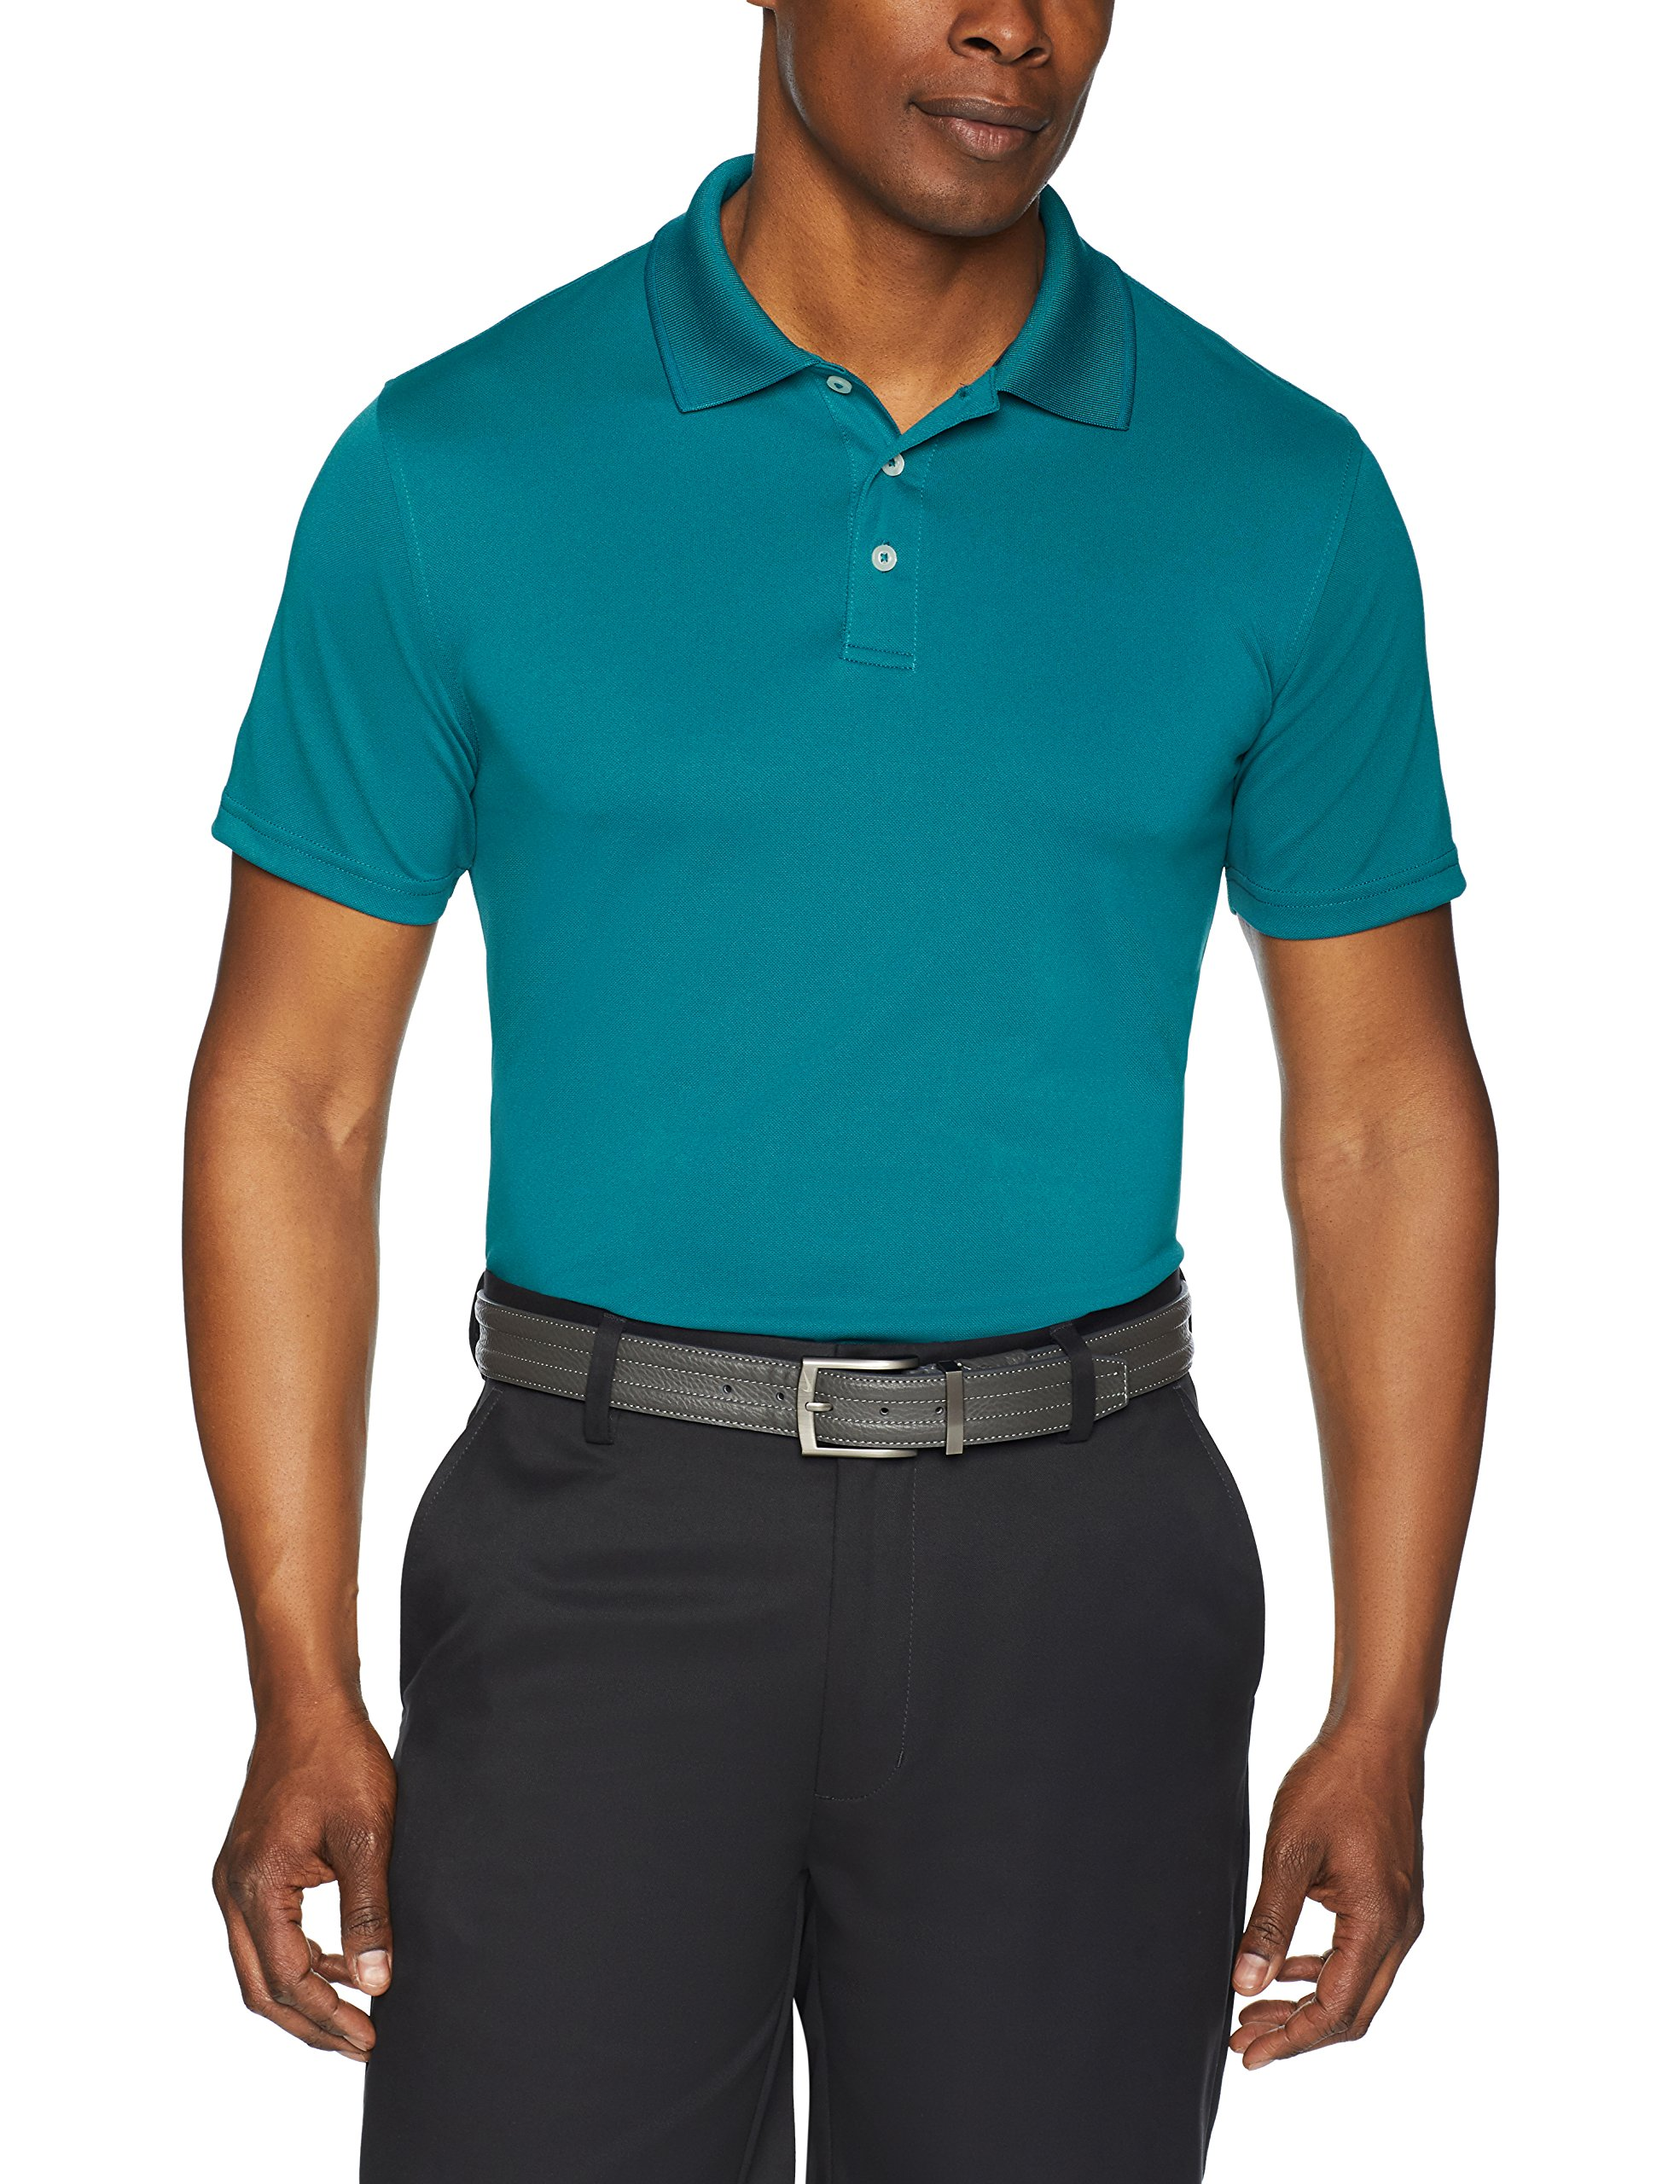 1238aad46b35 Amazon Essentials Men's Slim-Fit Quick-Dry Golf Polo Shirt | ExerciseN